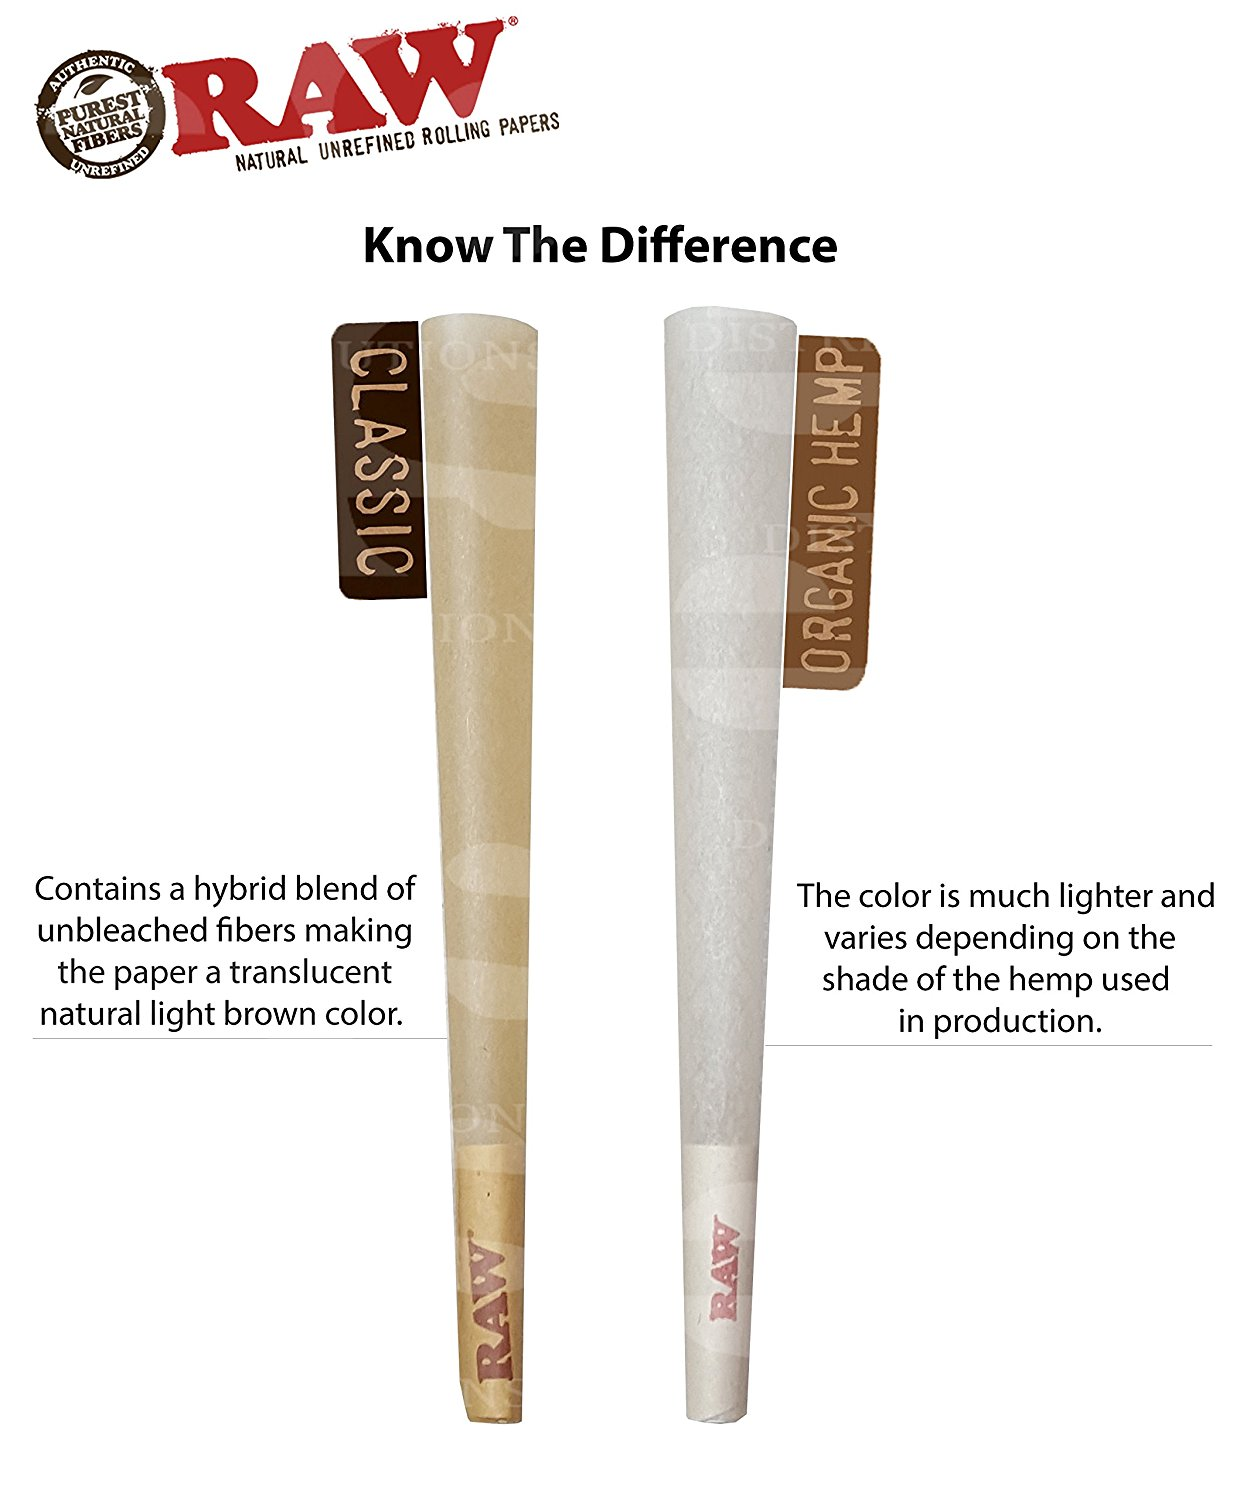 Organic Vs All Natural Papers